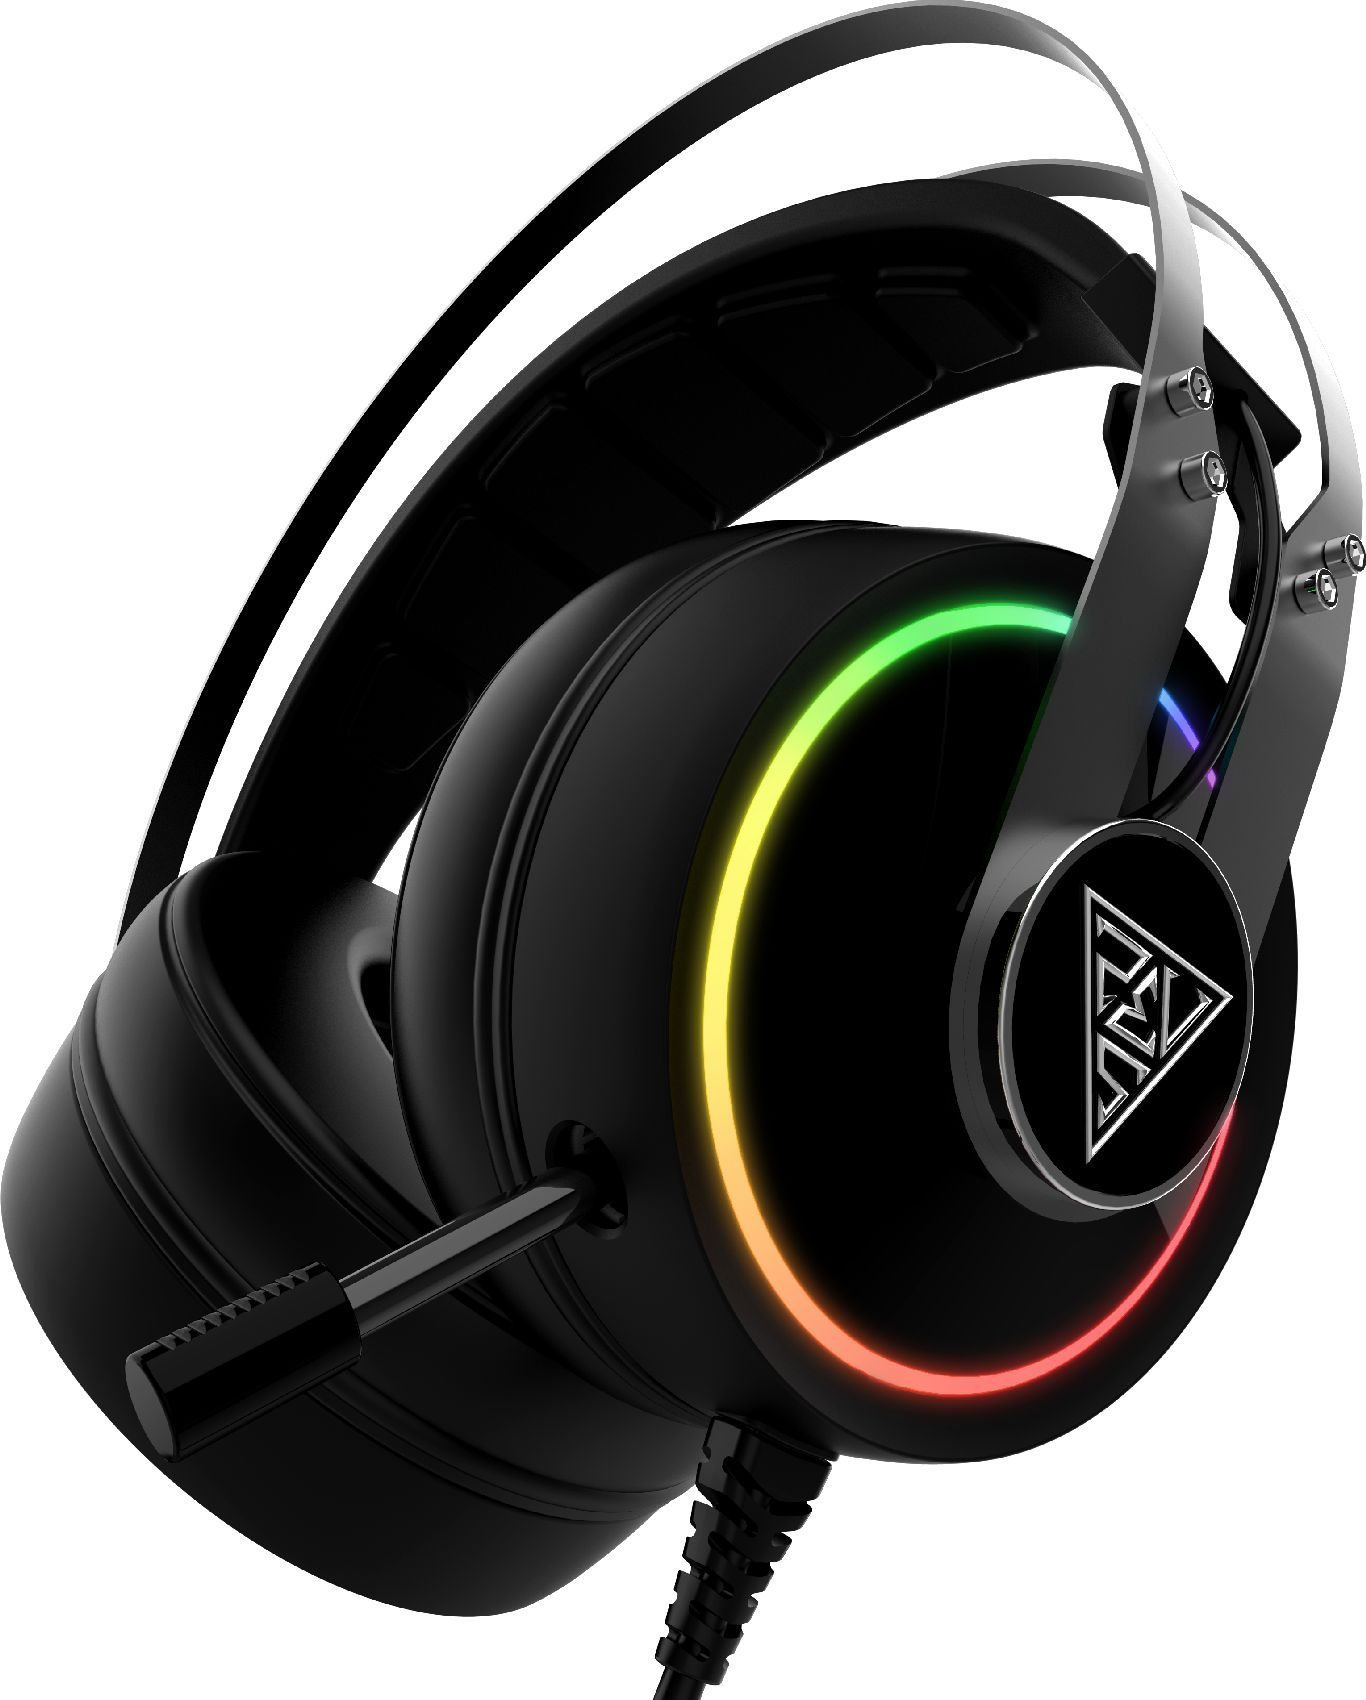 геймърски слушалки Gaming Heaphones - HEBE P1A RGB Virtual 7.1 / Vibration